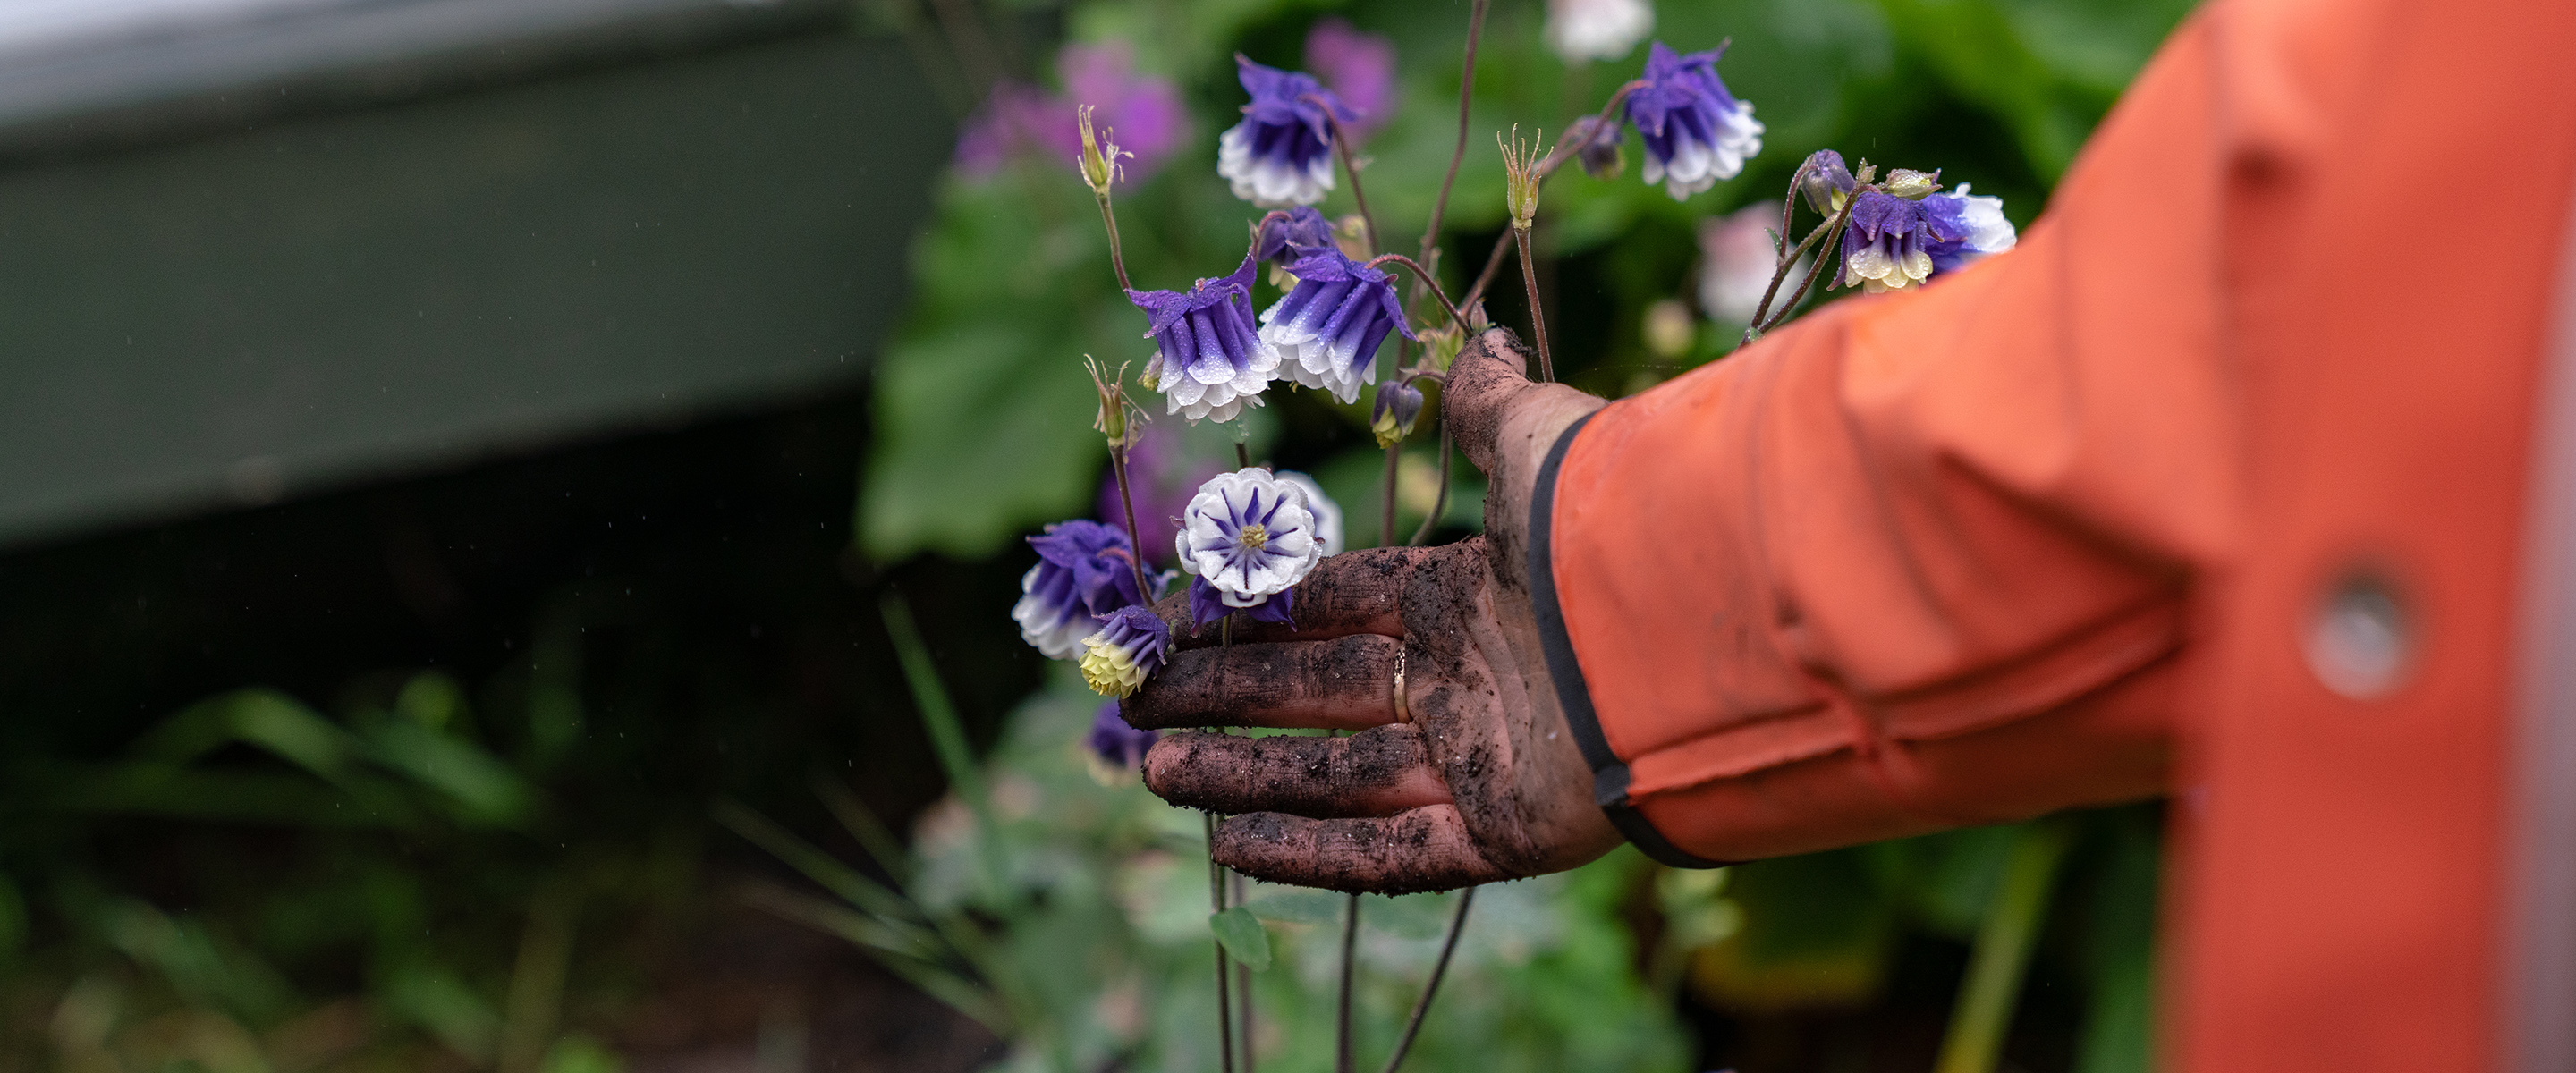 In Full Bloom: Flower Farming and the Roots of a Growing Movement